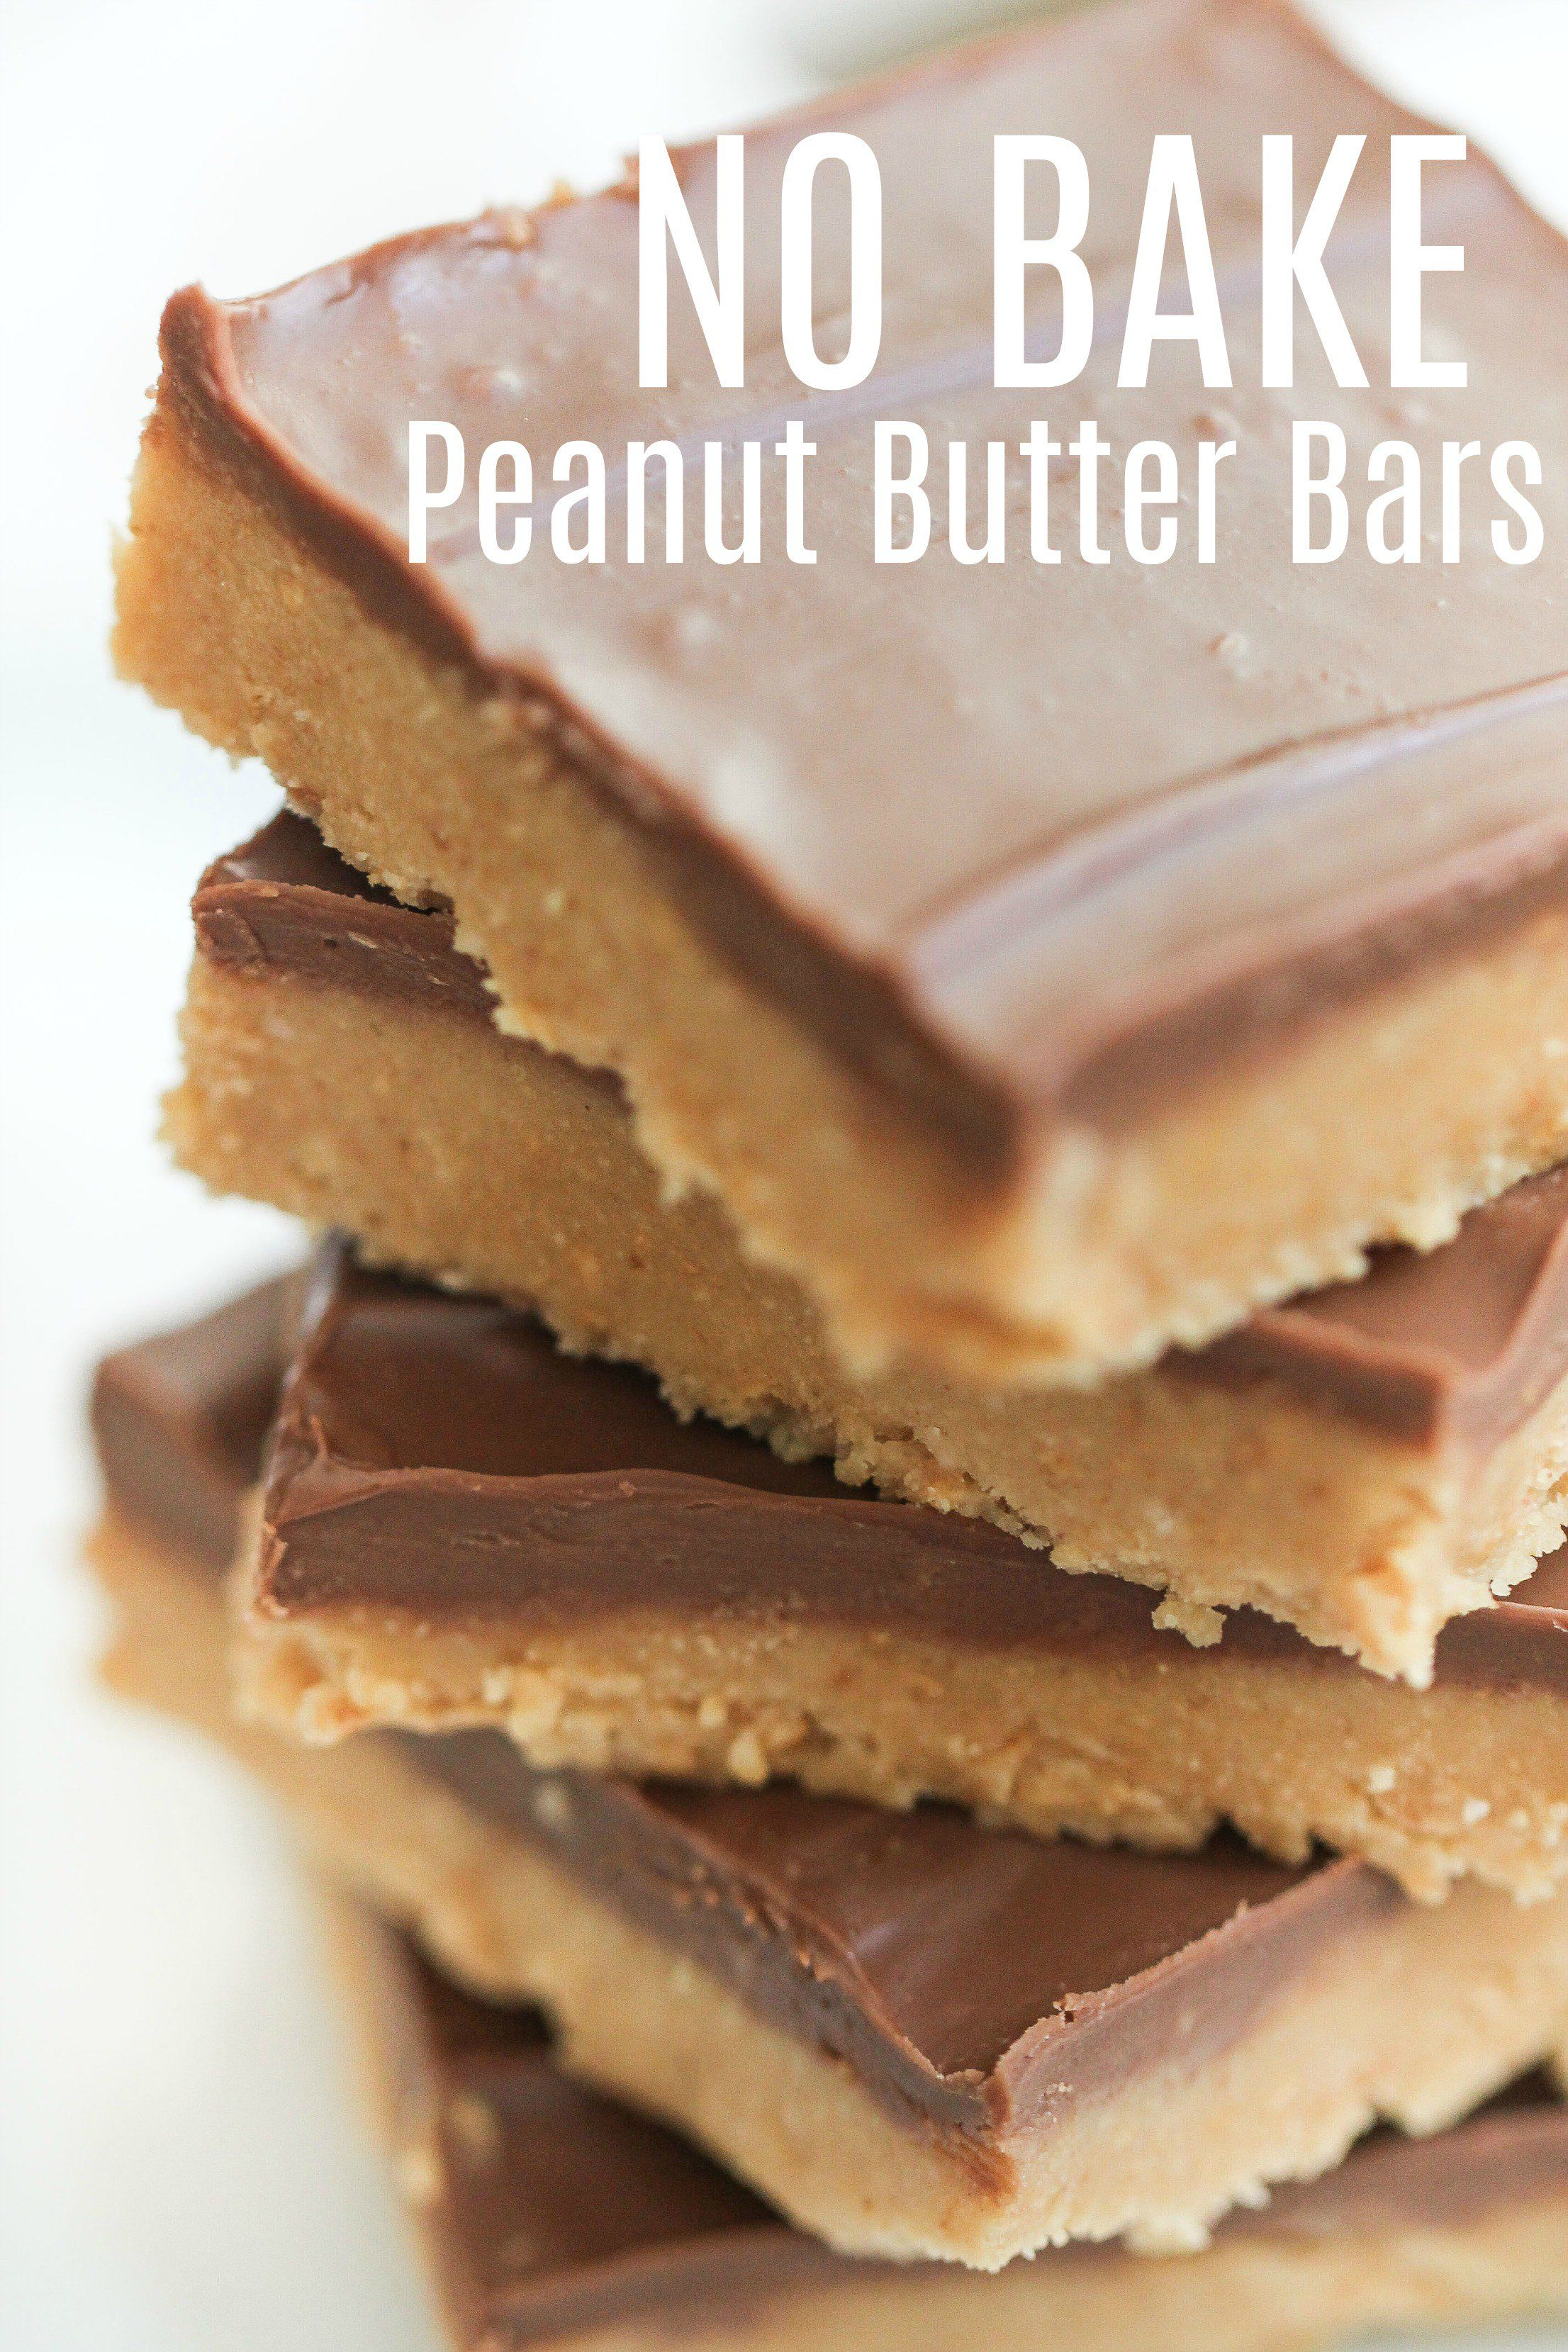 Easy No Bake Peanut Butter Bars Recipe  Six Sisters Stuff I love a good fast recipe that is pretty much failproof and turns out perfectly every time Its rare to come by b...